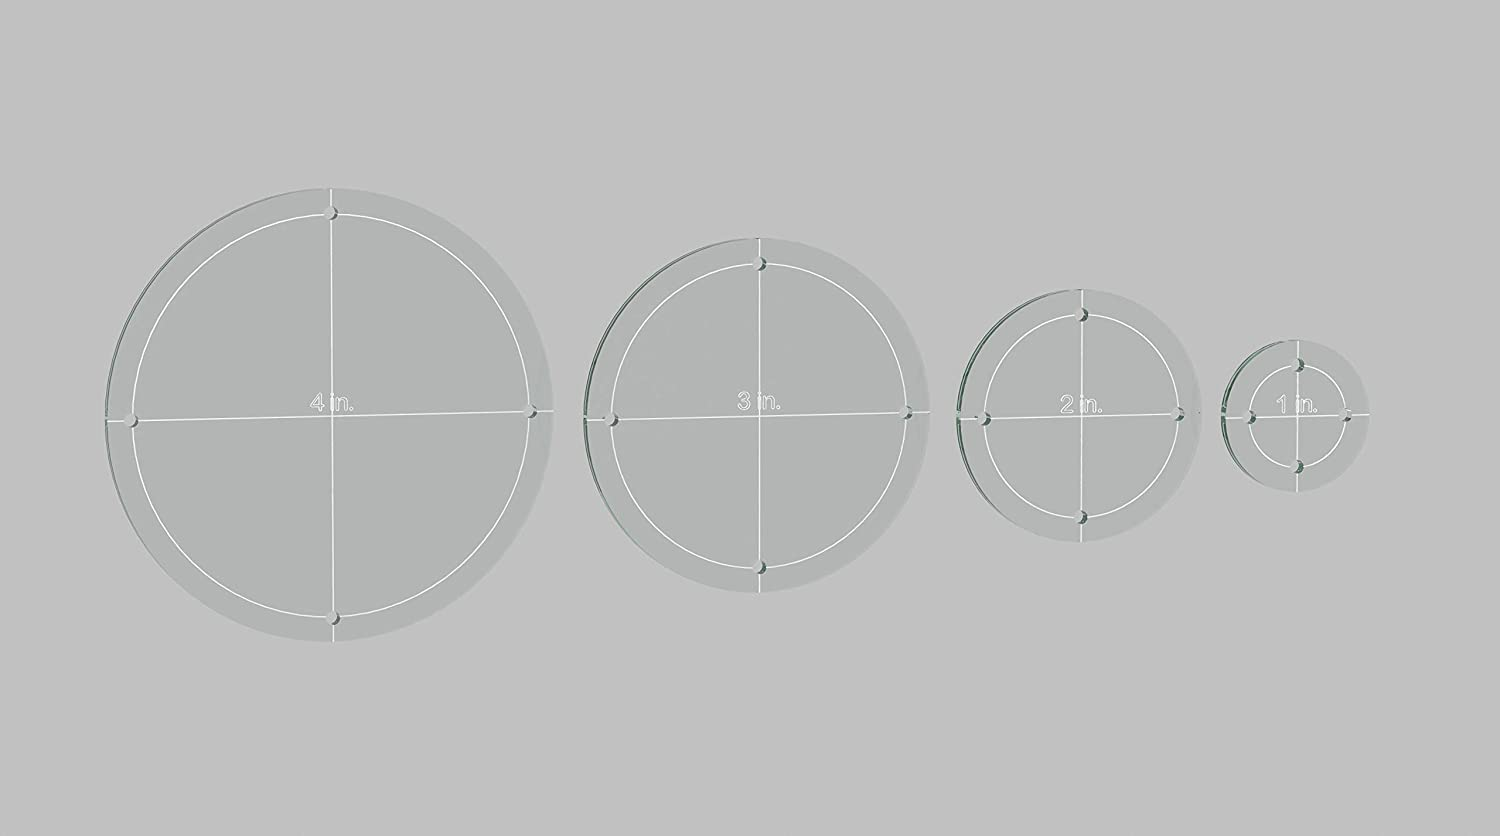 Circle Quilting Template Set, 4, 3, 2, 1 with 1/4 Seam Allowance 4 3 2 LaserThing